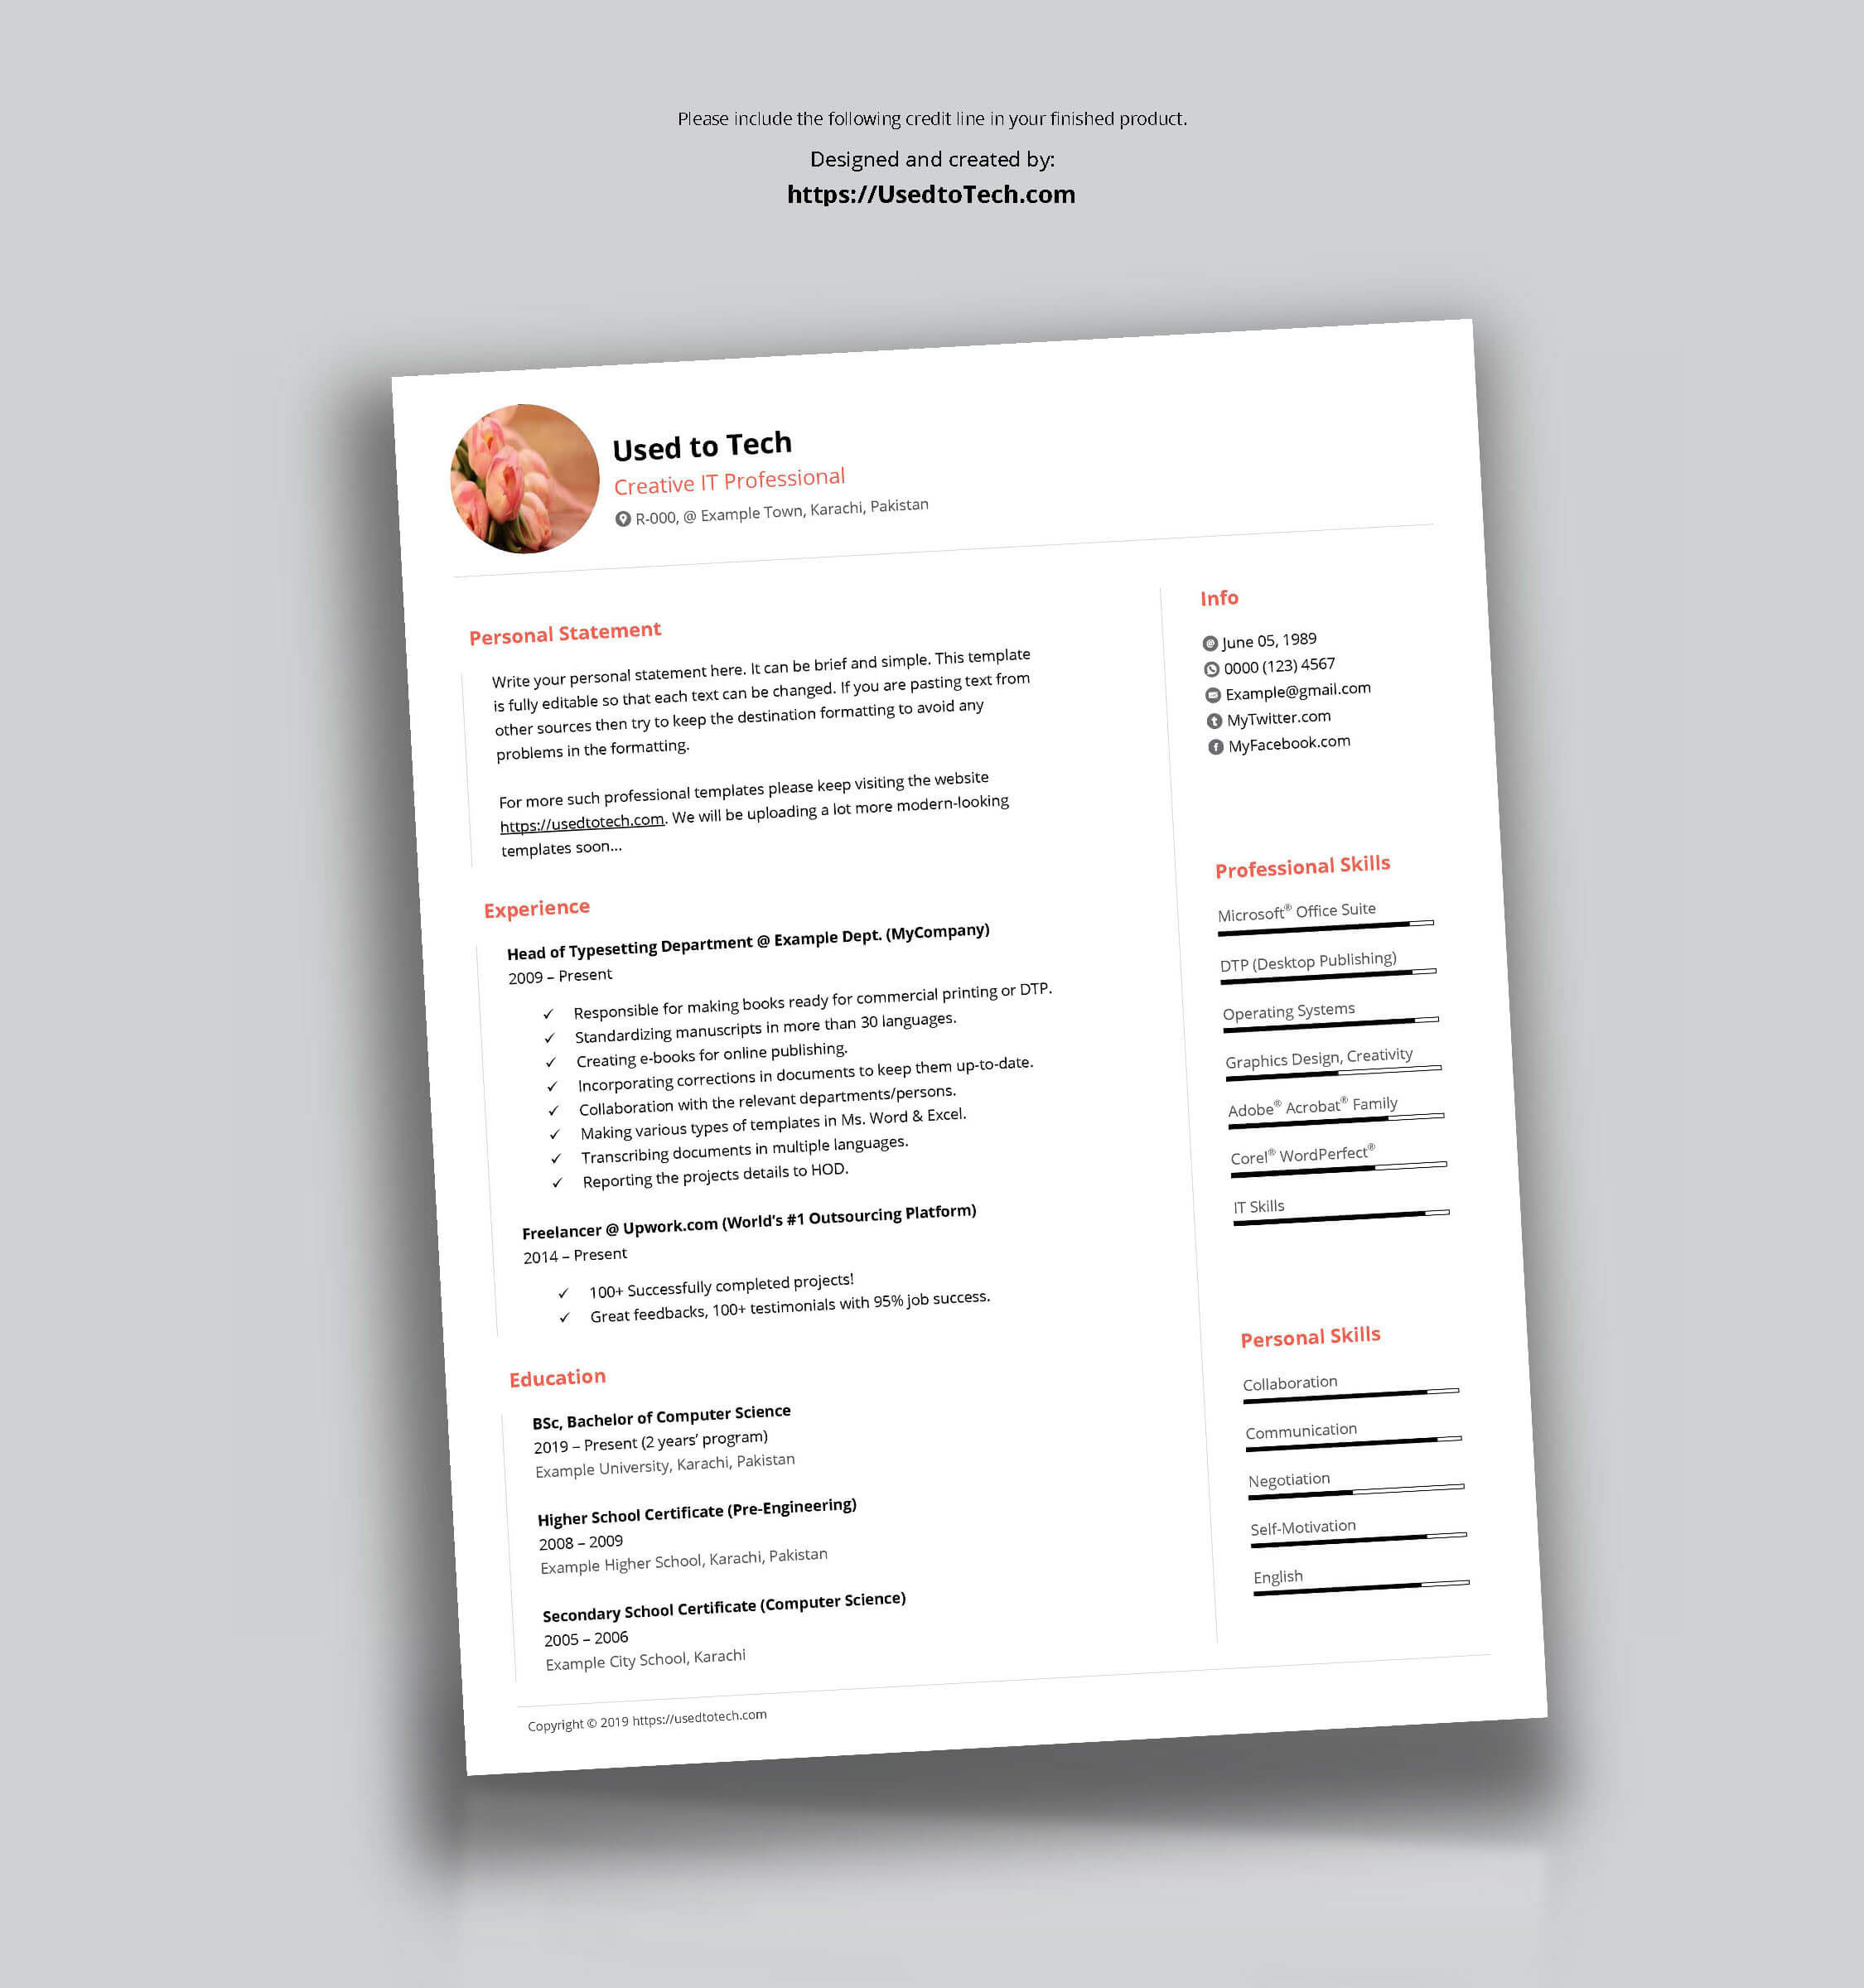 Free Minimal Cv Template In Ms Word - Used To Tech with How To Make A Cv Template On Microsoft Word